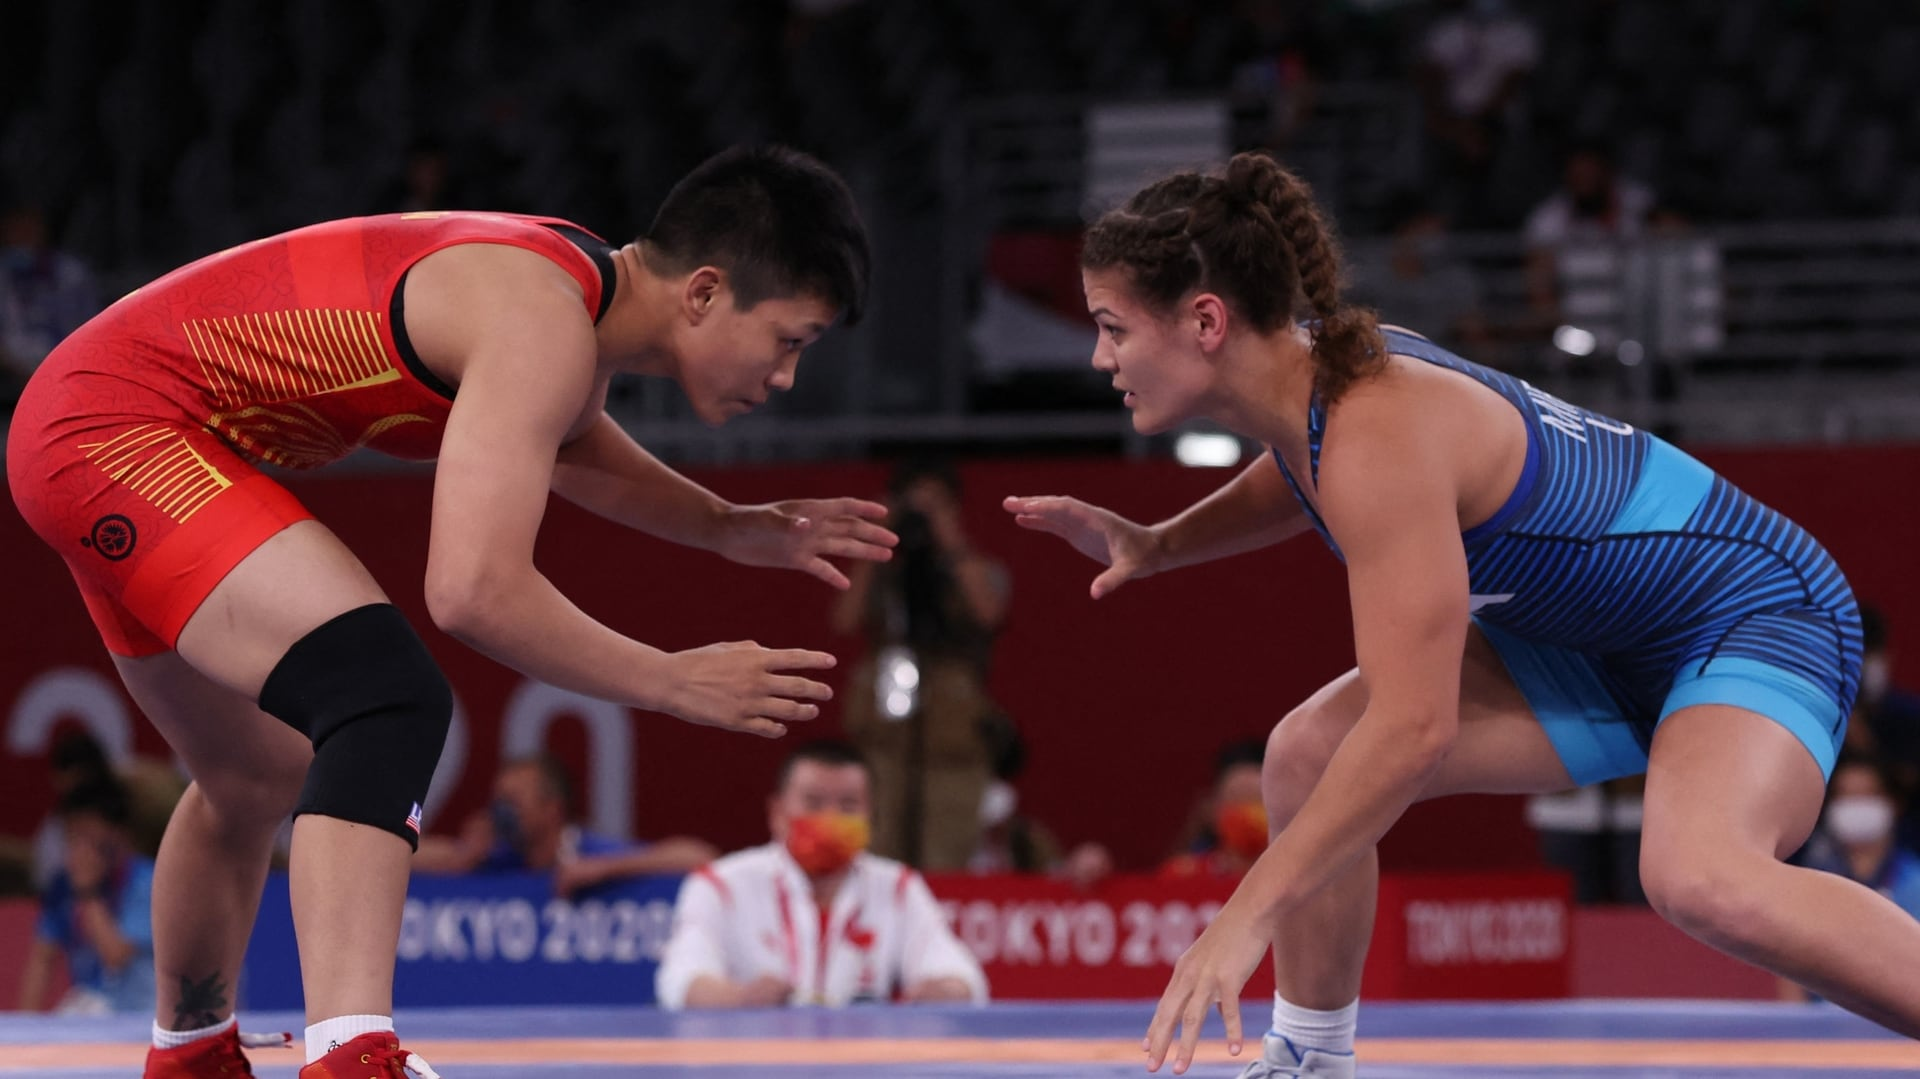 Image for Team USA wrestlers Miracle, Stefanowicz, Sancho out in 1/8 finals